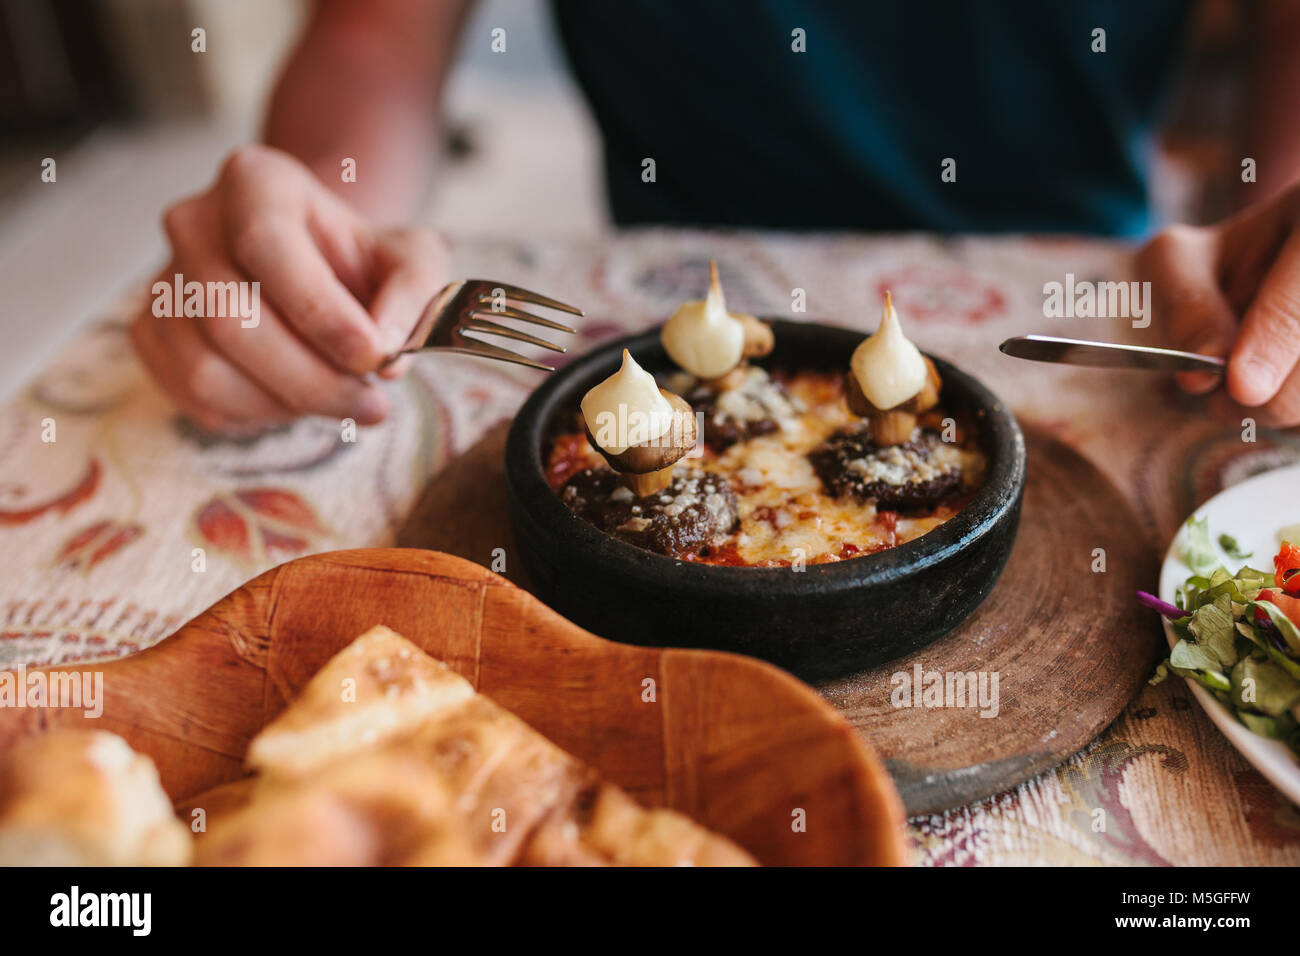 Man's hands holding cutlery - preparing to eat dish with mushrooms at table in cafe - Stock Image